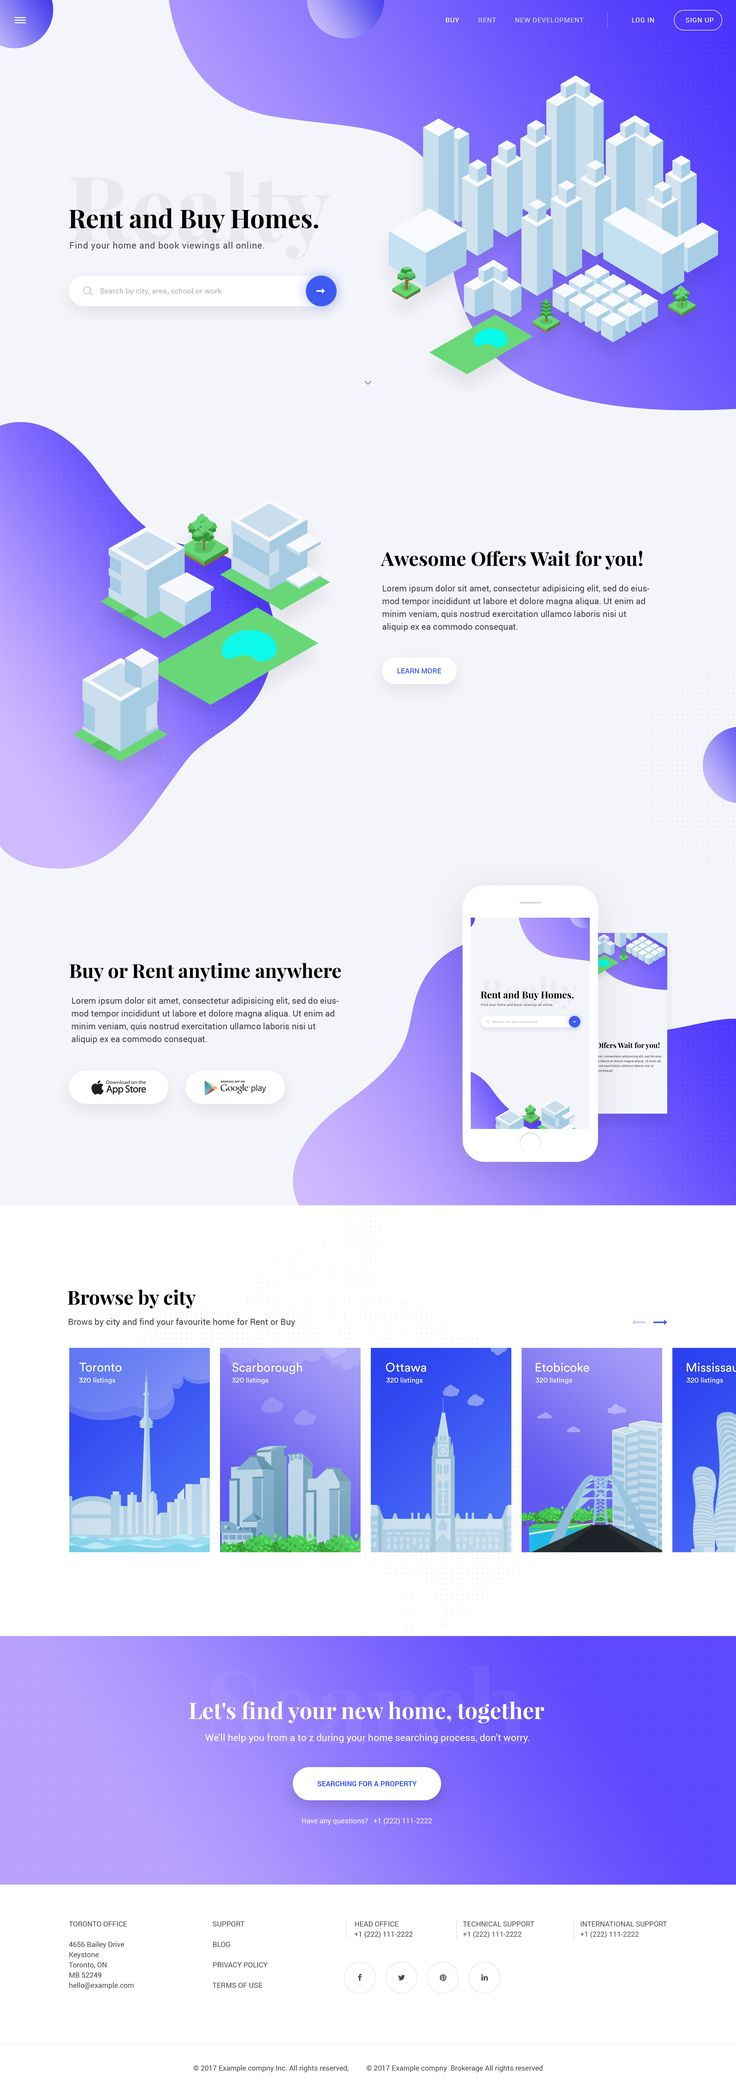 Home buy or rent landing page concept